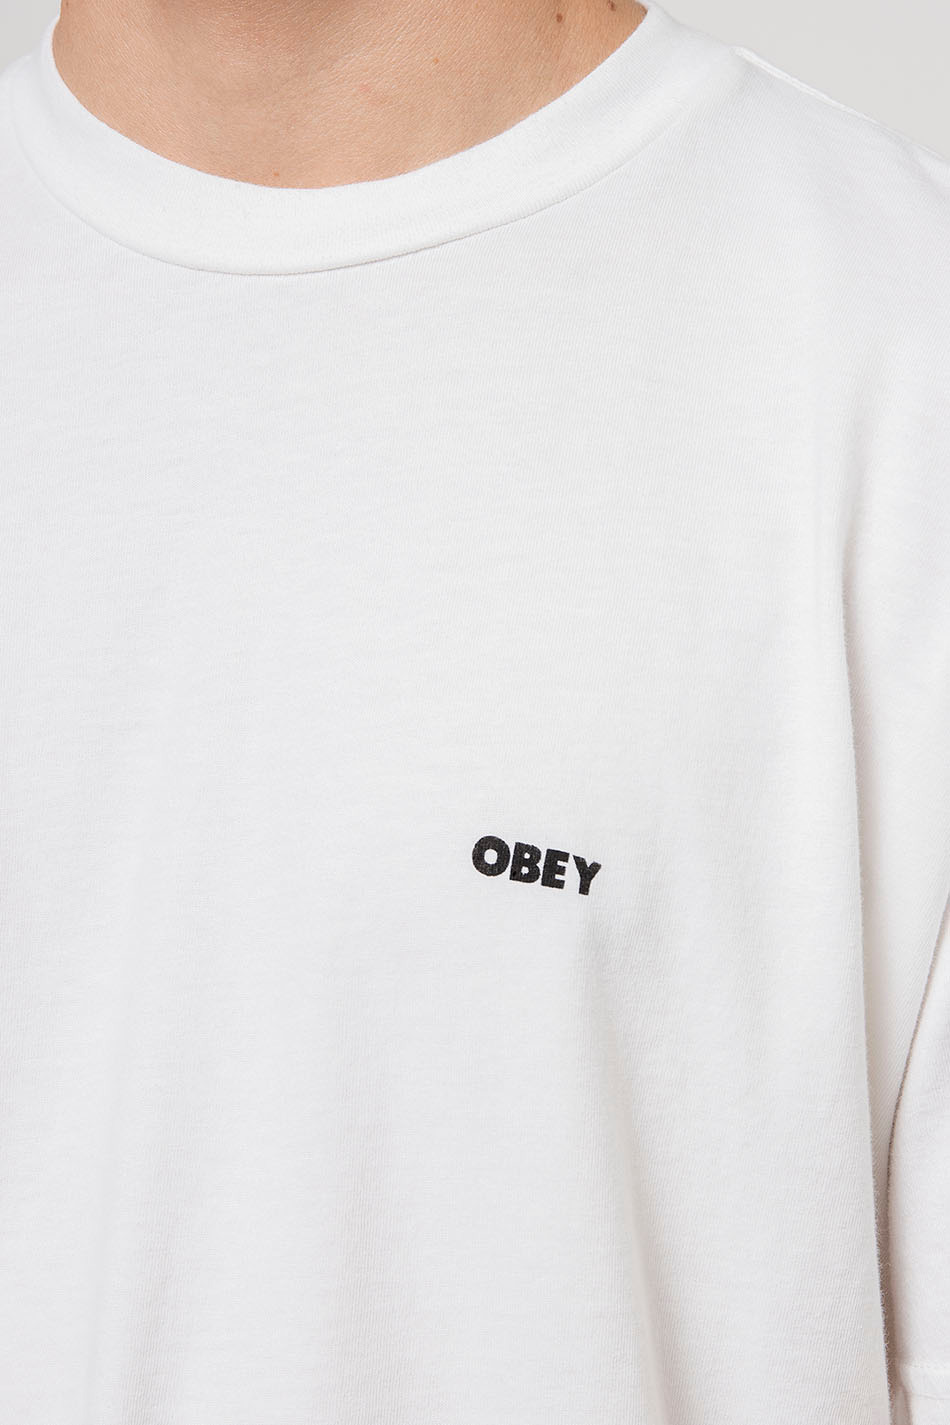 Obey Respect Your Mother White T-shirt